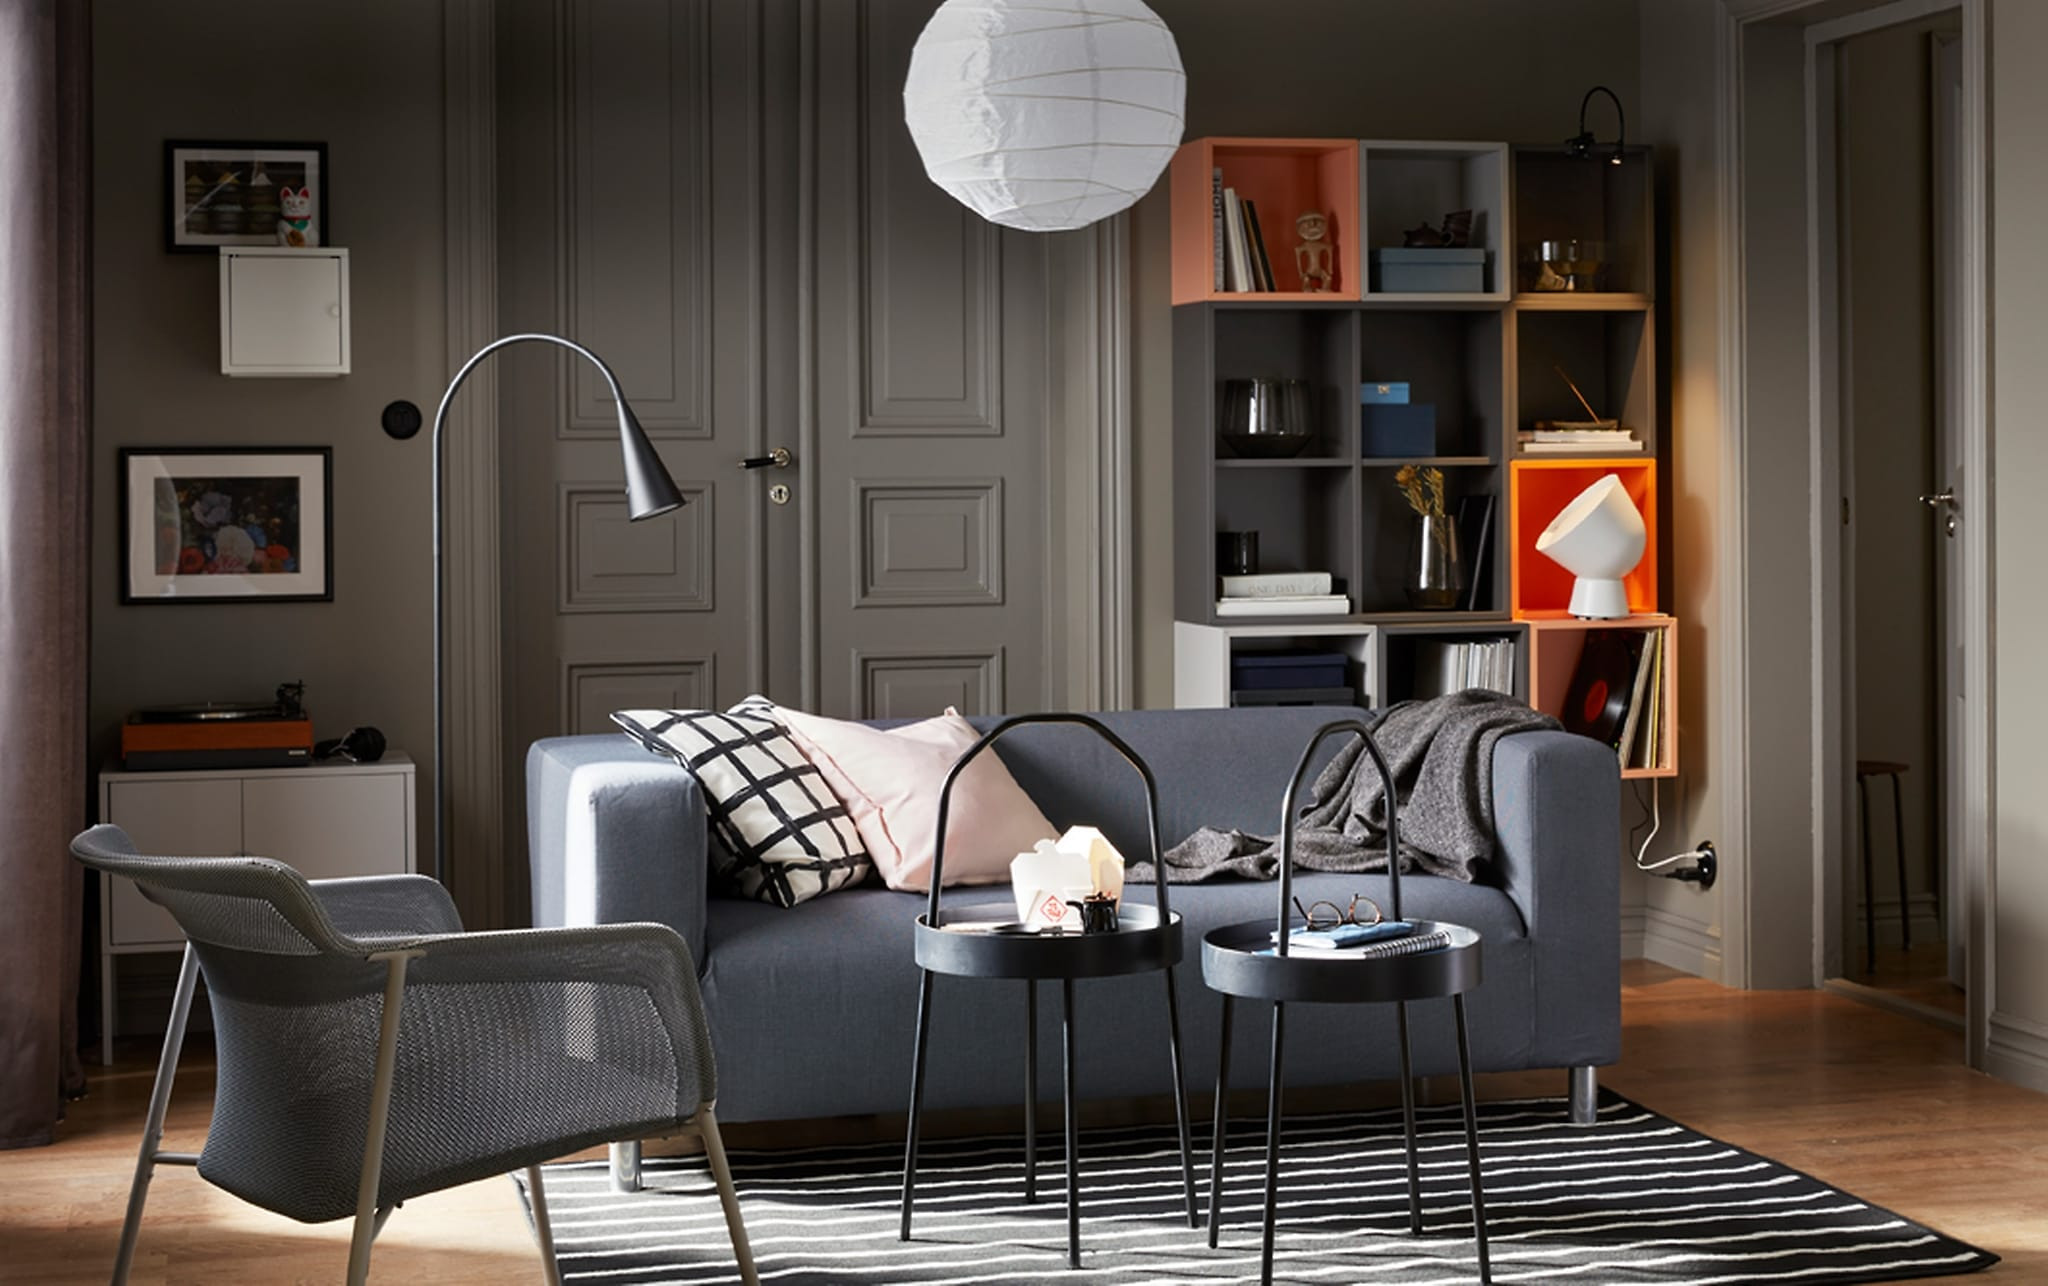 Best ideas about Ikea Living Room . Save or Pin Living Room Furniture & Ideas Now.